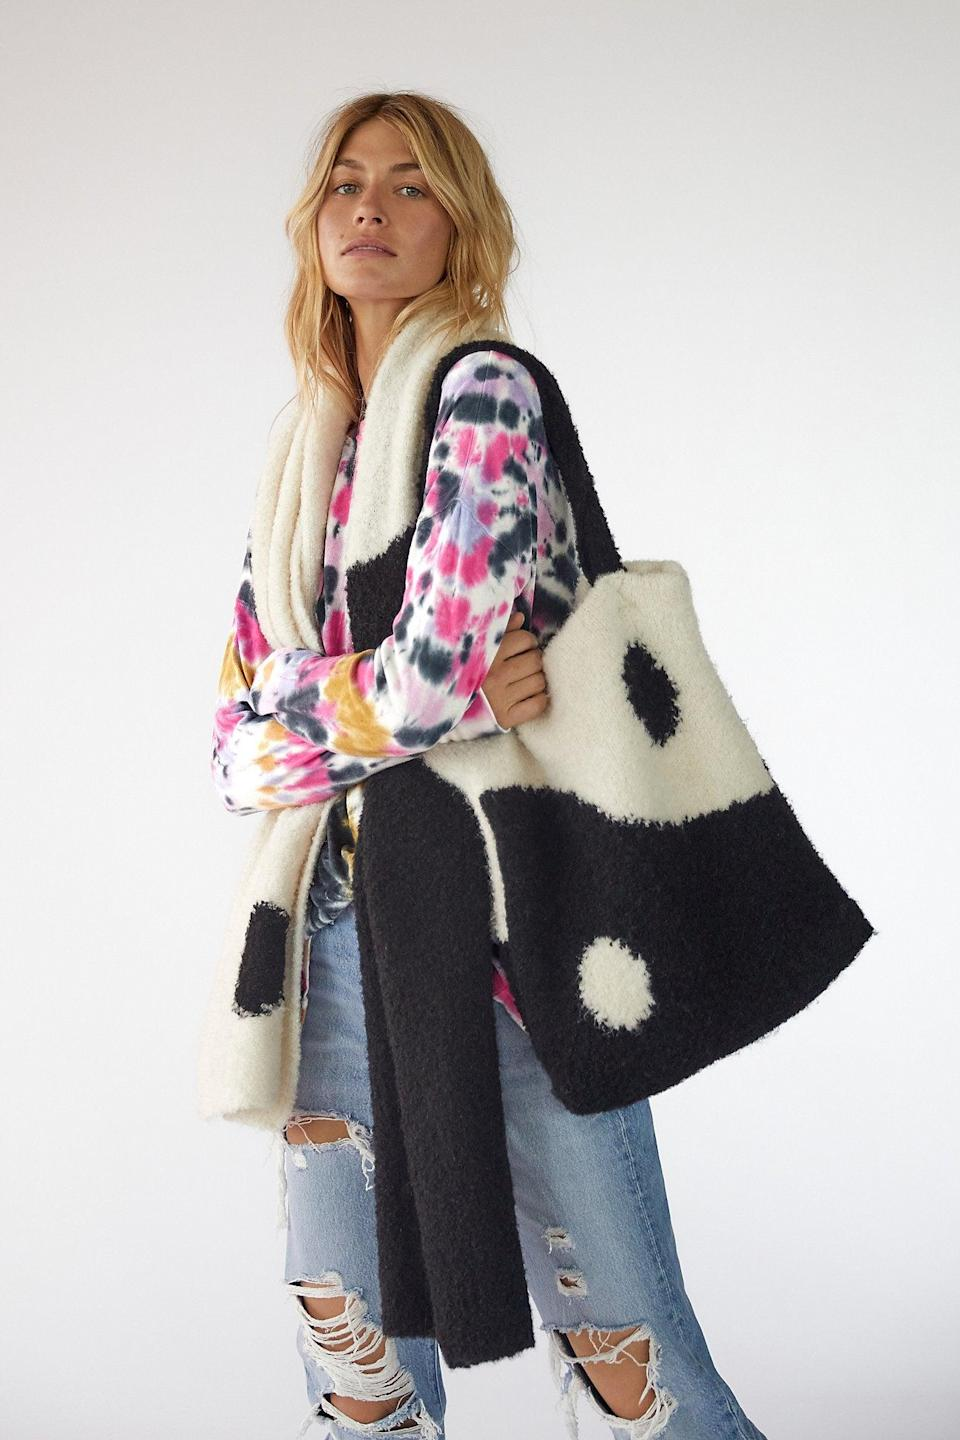 "<br><br><strong>Free People</strong> Carry On Scarf and Tote Set, $, available at <a href=""https://go.skimresources.com/?id=30283X879131&url=https%3A%2F%2Fwww.freepeople.com%2Fshop%2Fcarry-on-scarf-set%2F%3Fcolor%3D018%26type%3DREGULAR%26size%3DOne%2520Size%26quantity%3D1"" rel=""nofollow noopener"" target=""_blank"" data-ylk=""slk:Free People"" class=""link rapid-noclick-resp"">Free People</a>"